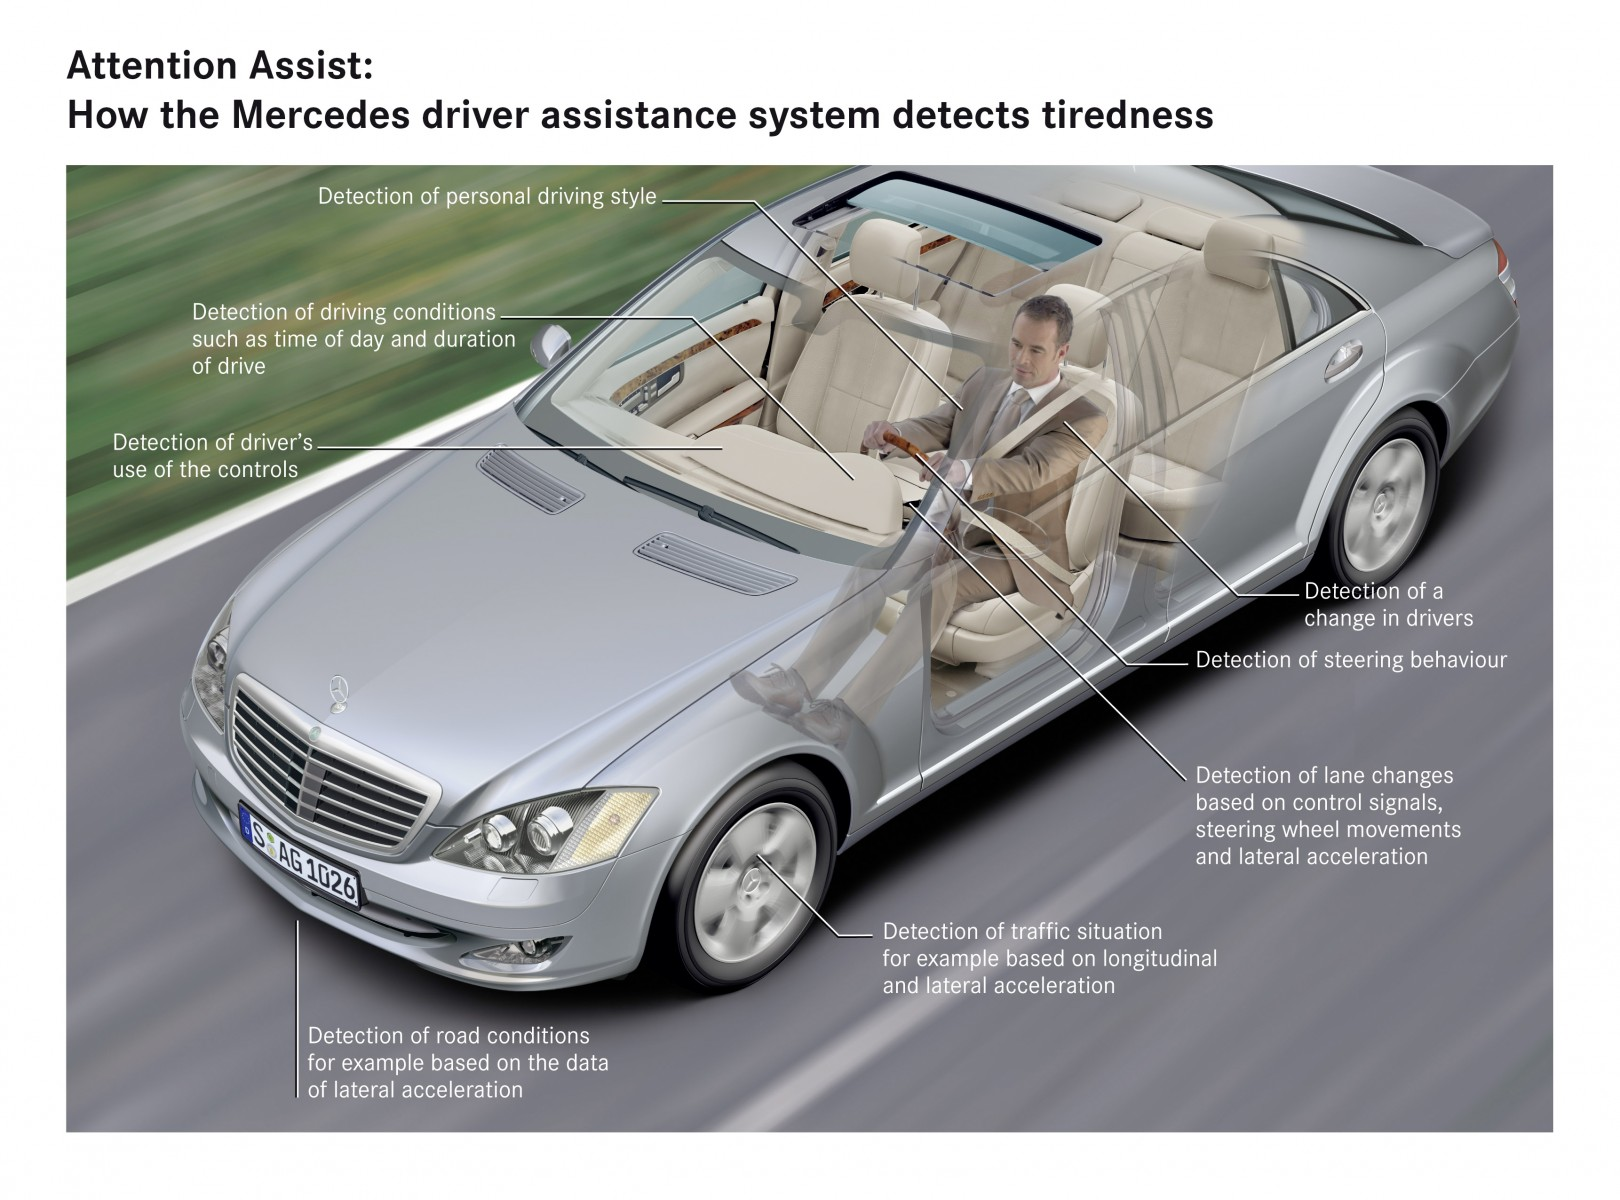 Mercedes-Benz-Benz voert vanaf de lente 2009 de Attention Assist in de serieproductie in